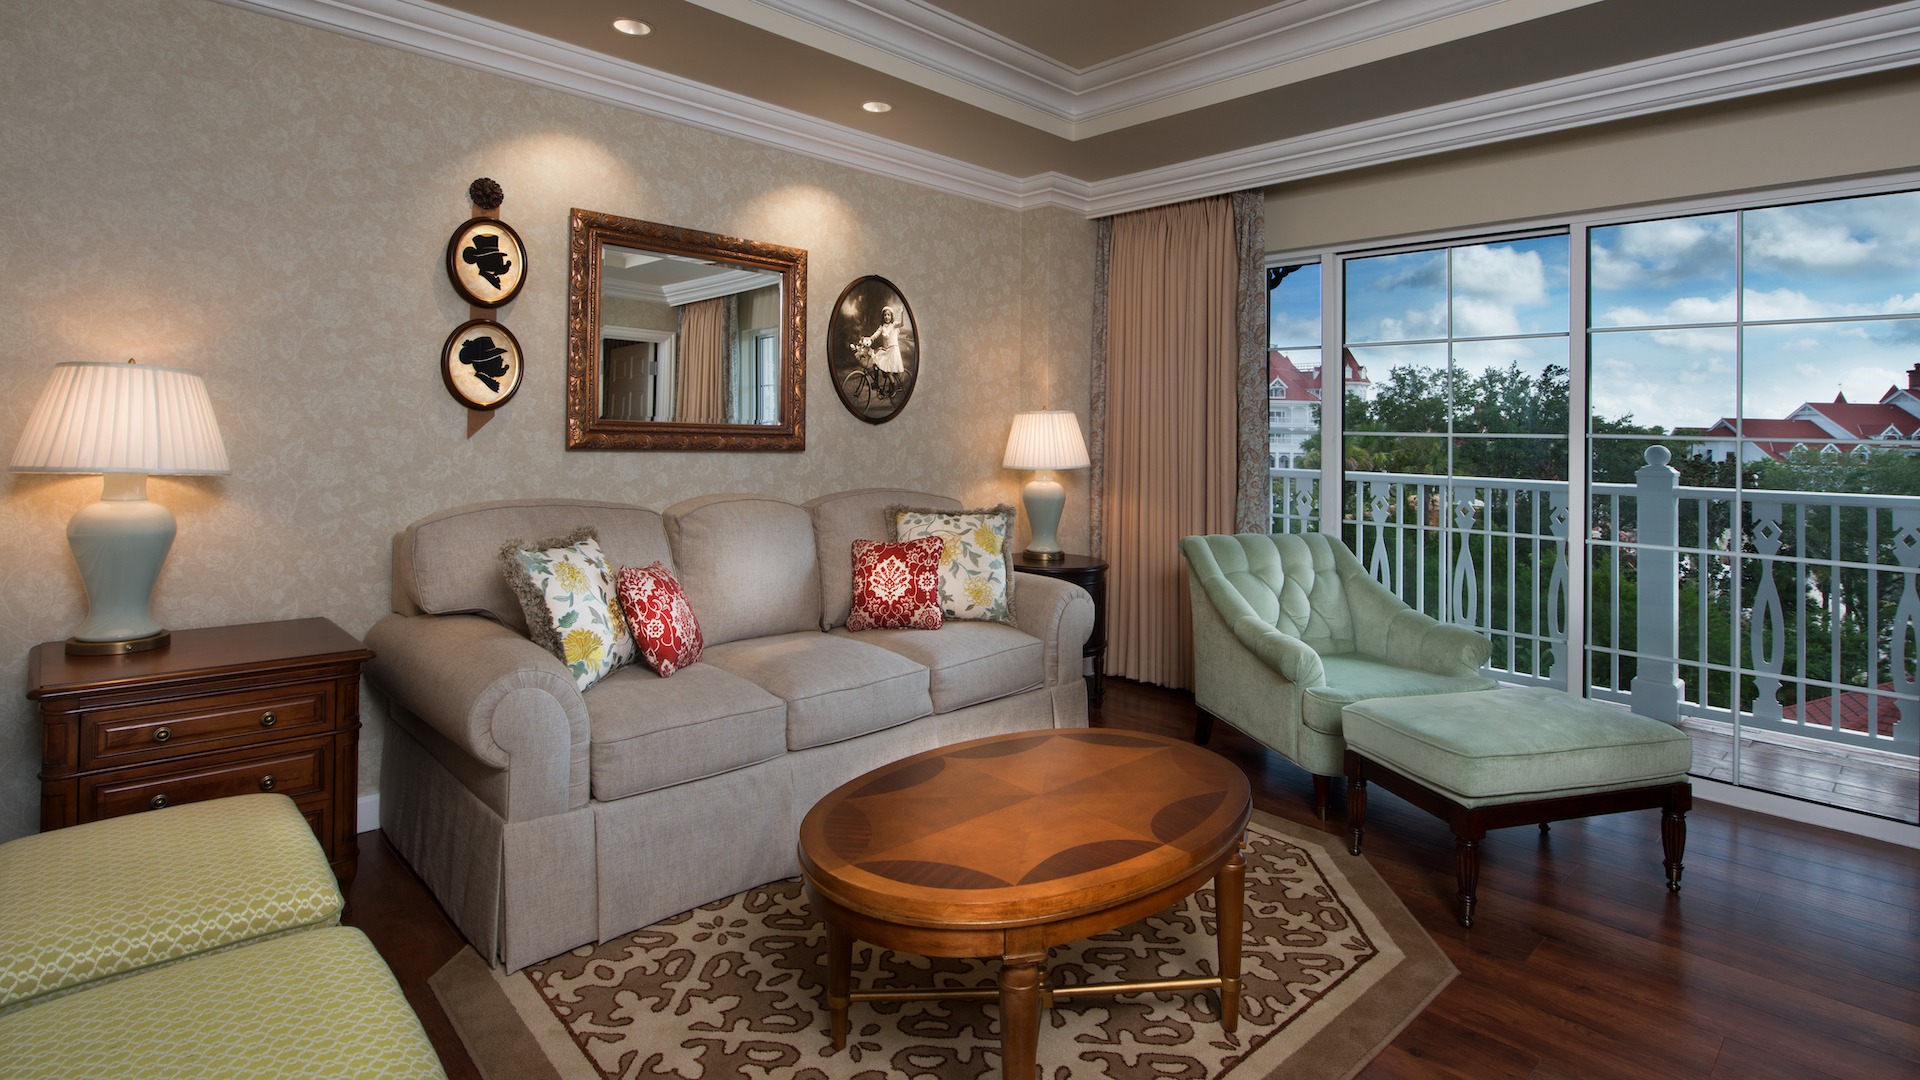 Grand floridian villas 1br suite- Disney Resorts for Families of 5 or More